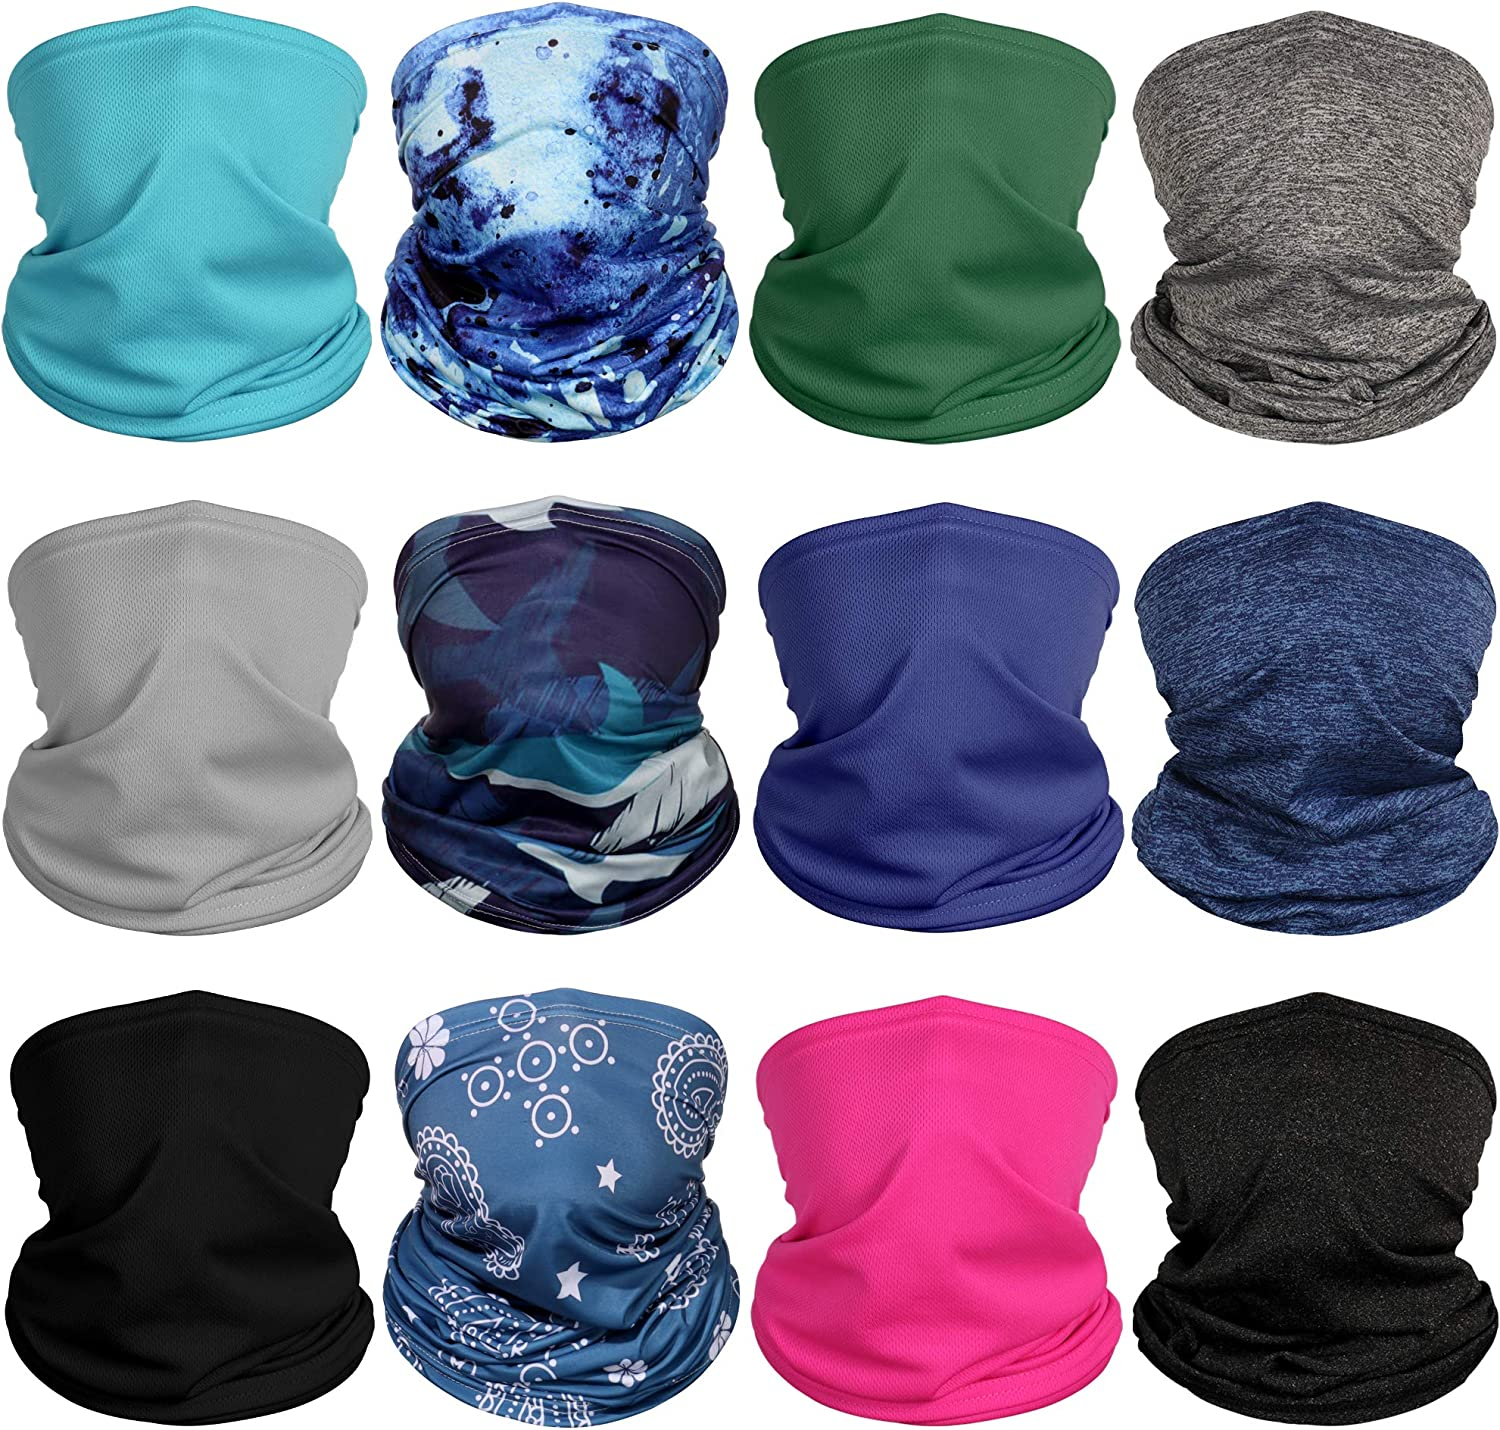 Face Neck Tube Scarf Neck Cover Scarf Sun UV Protection Scarves Supply